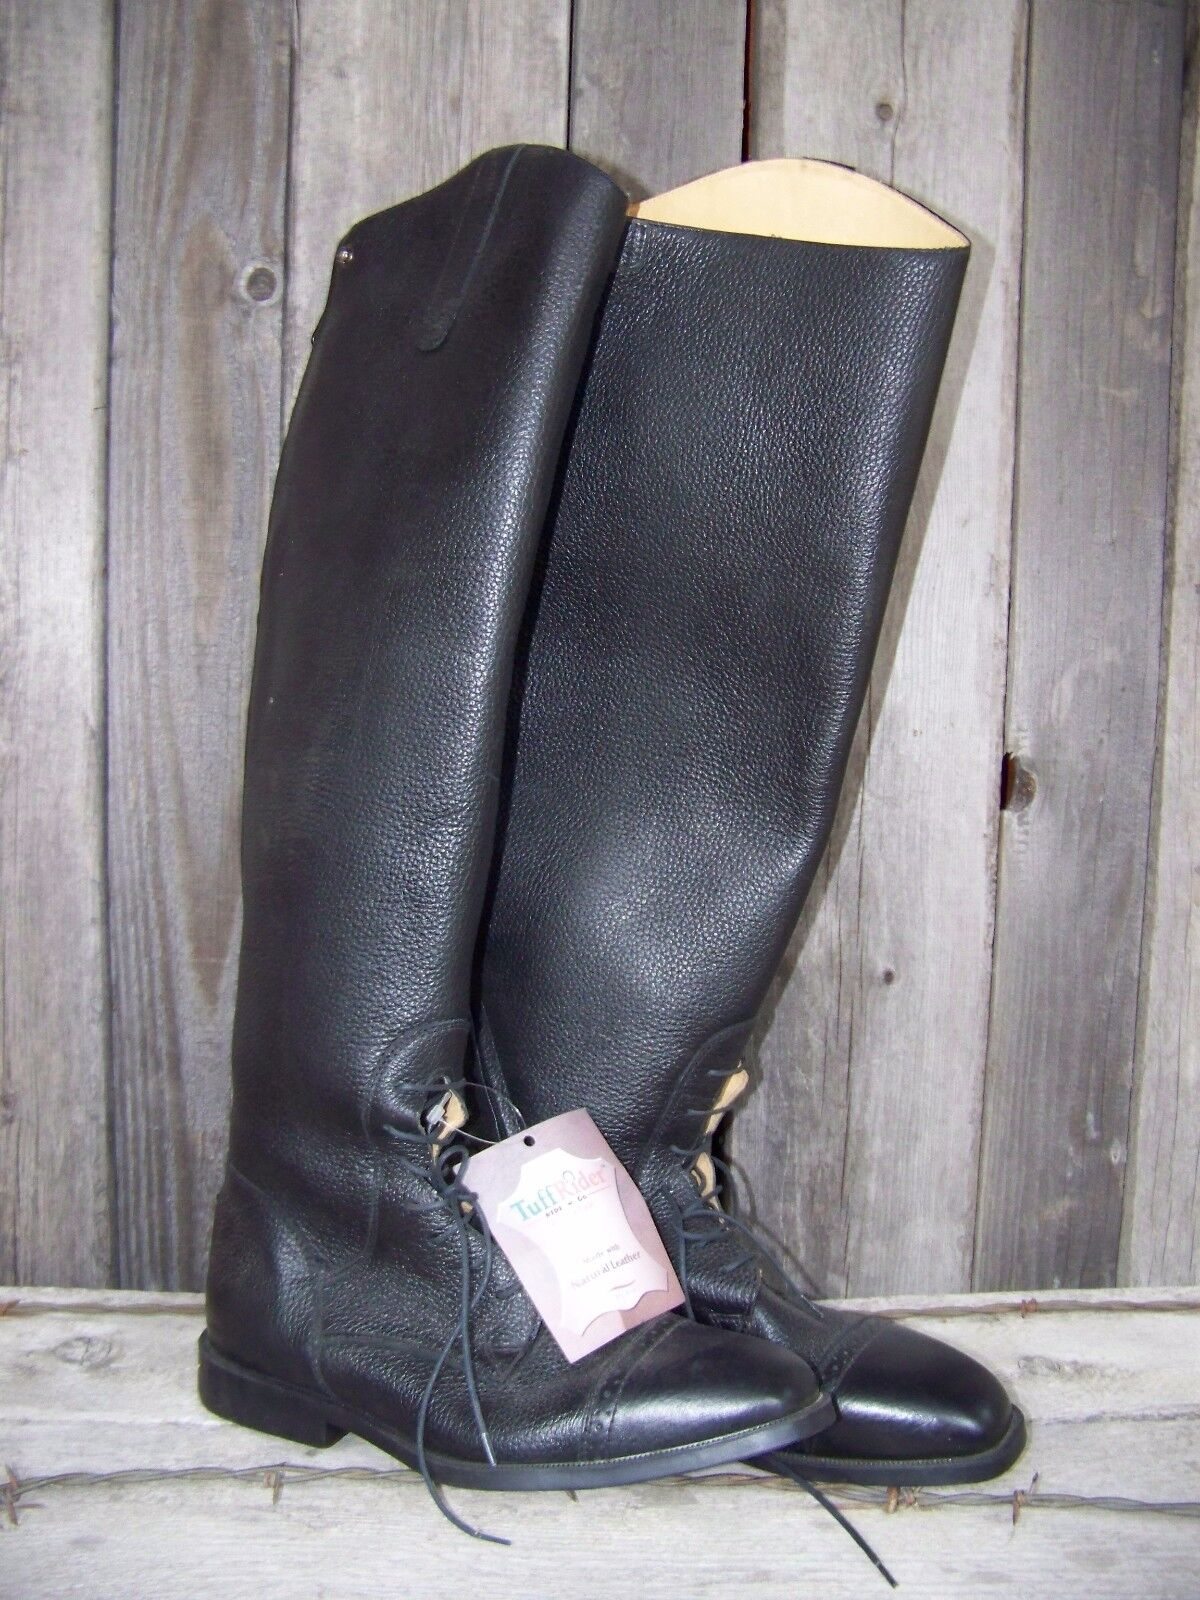 Field Boots (Pebbled Grain) with Slide Zip - TuffRider for Women (Size 11.0S)